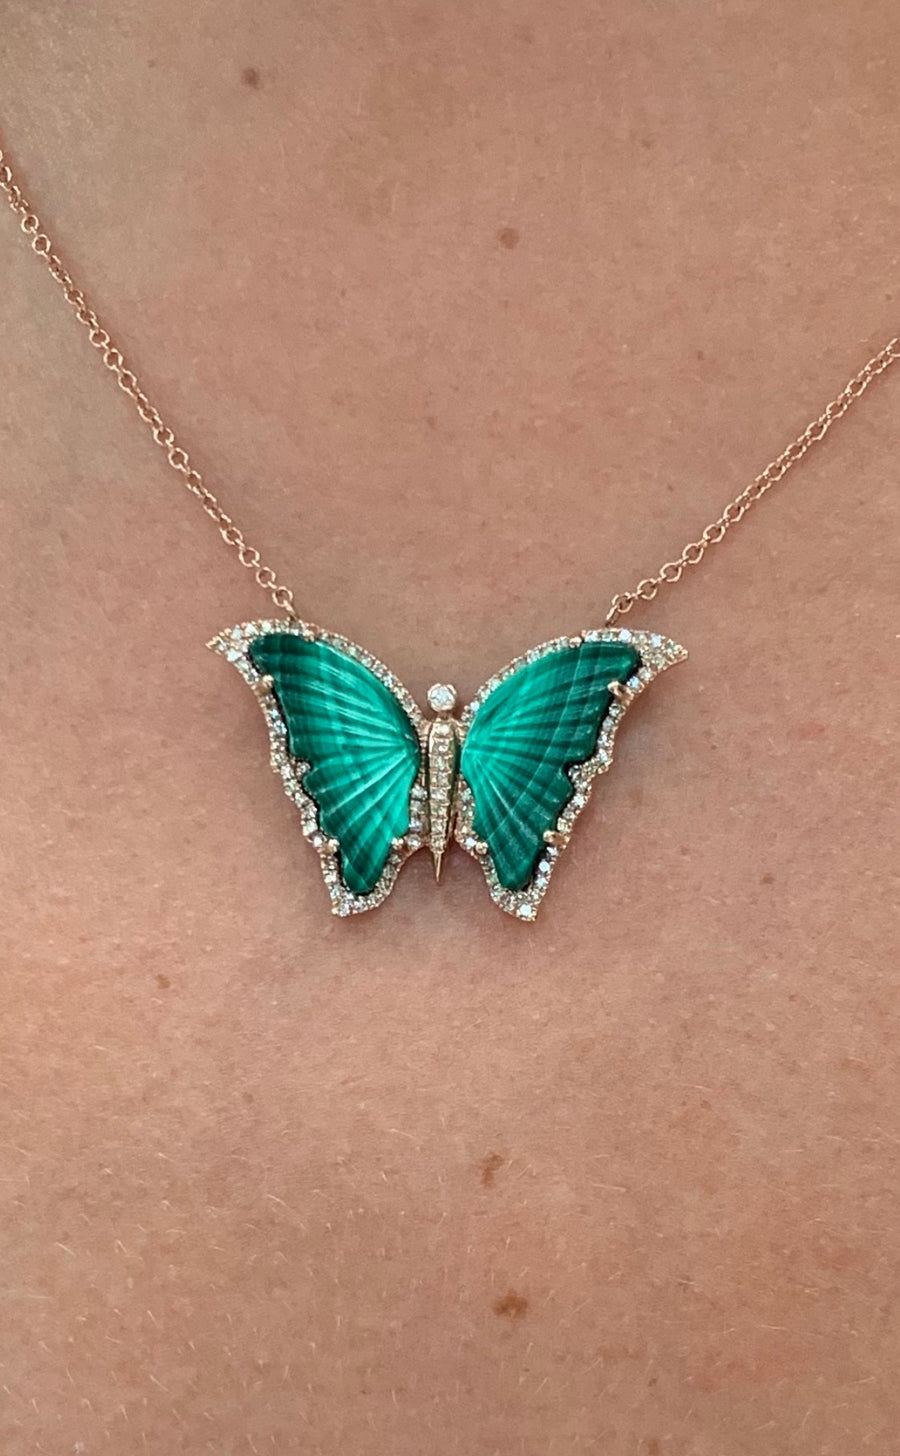 DIAMOND AND MALACHITE BUTTERFLY NECKLACE